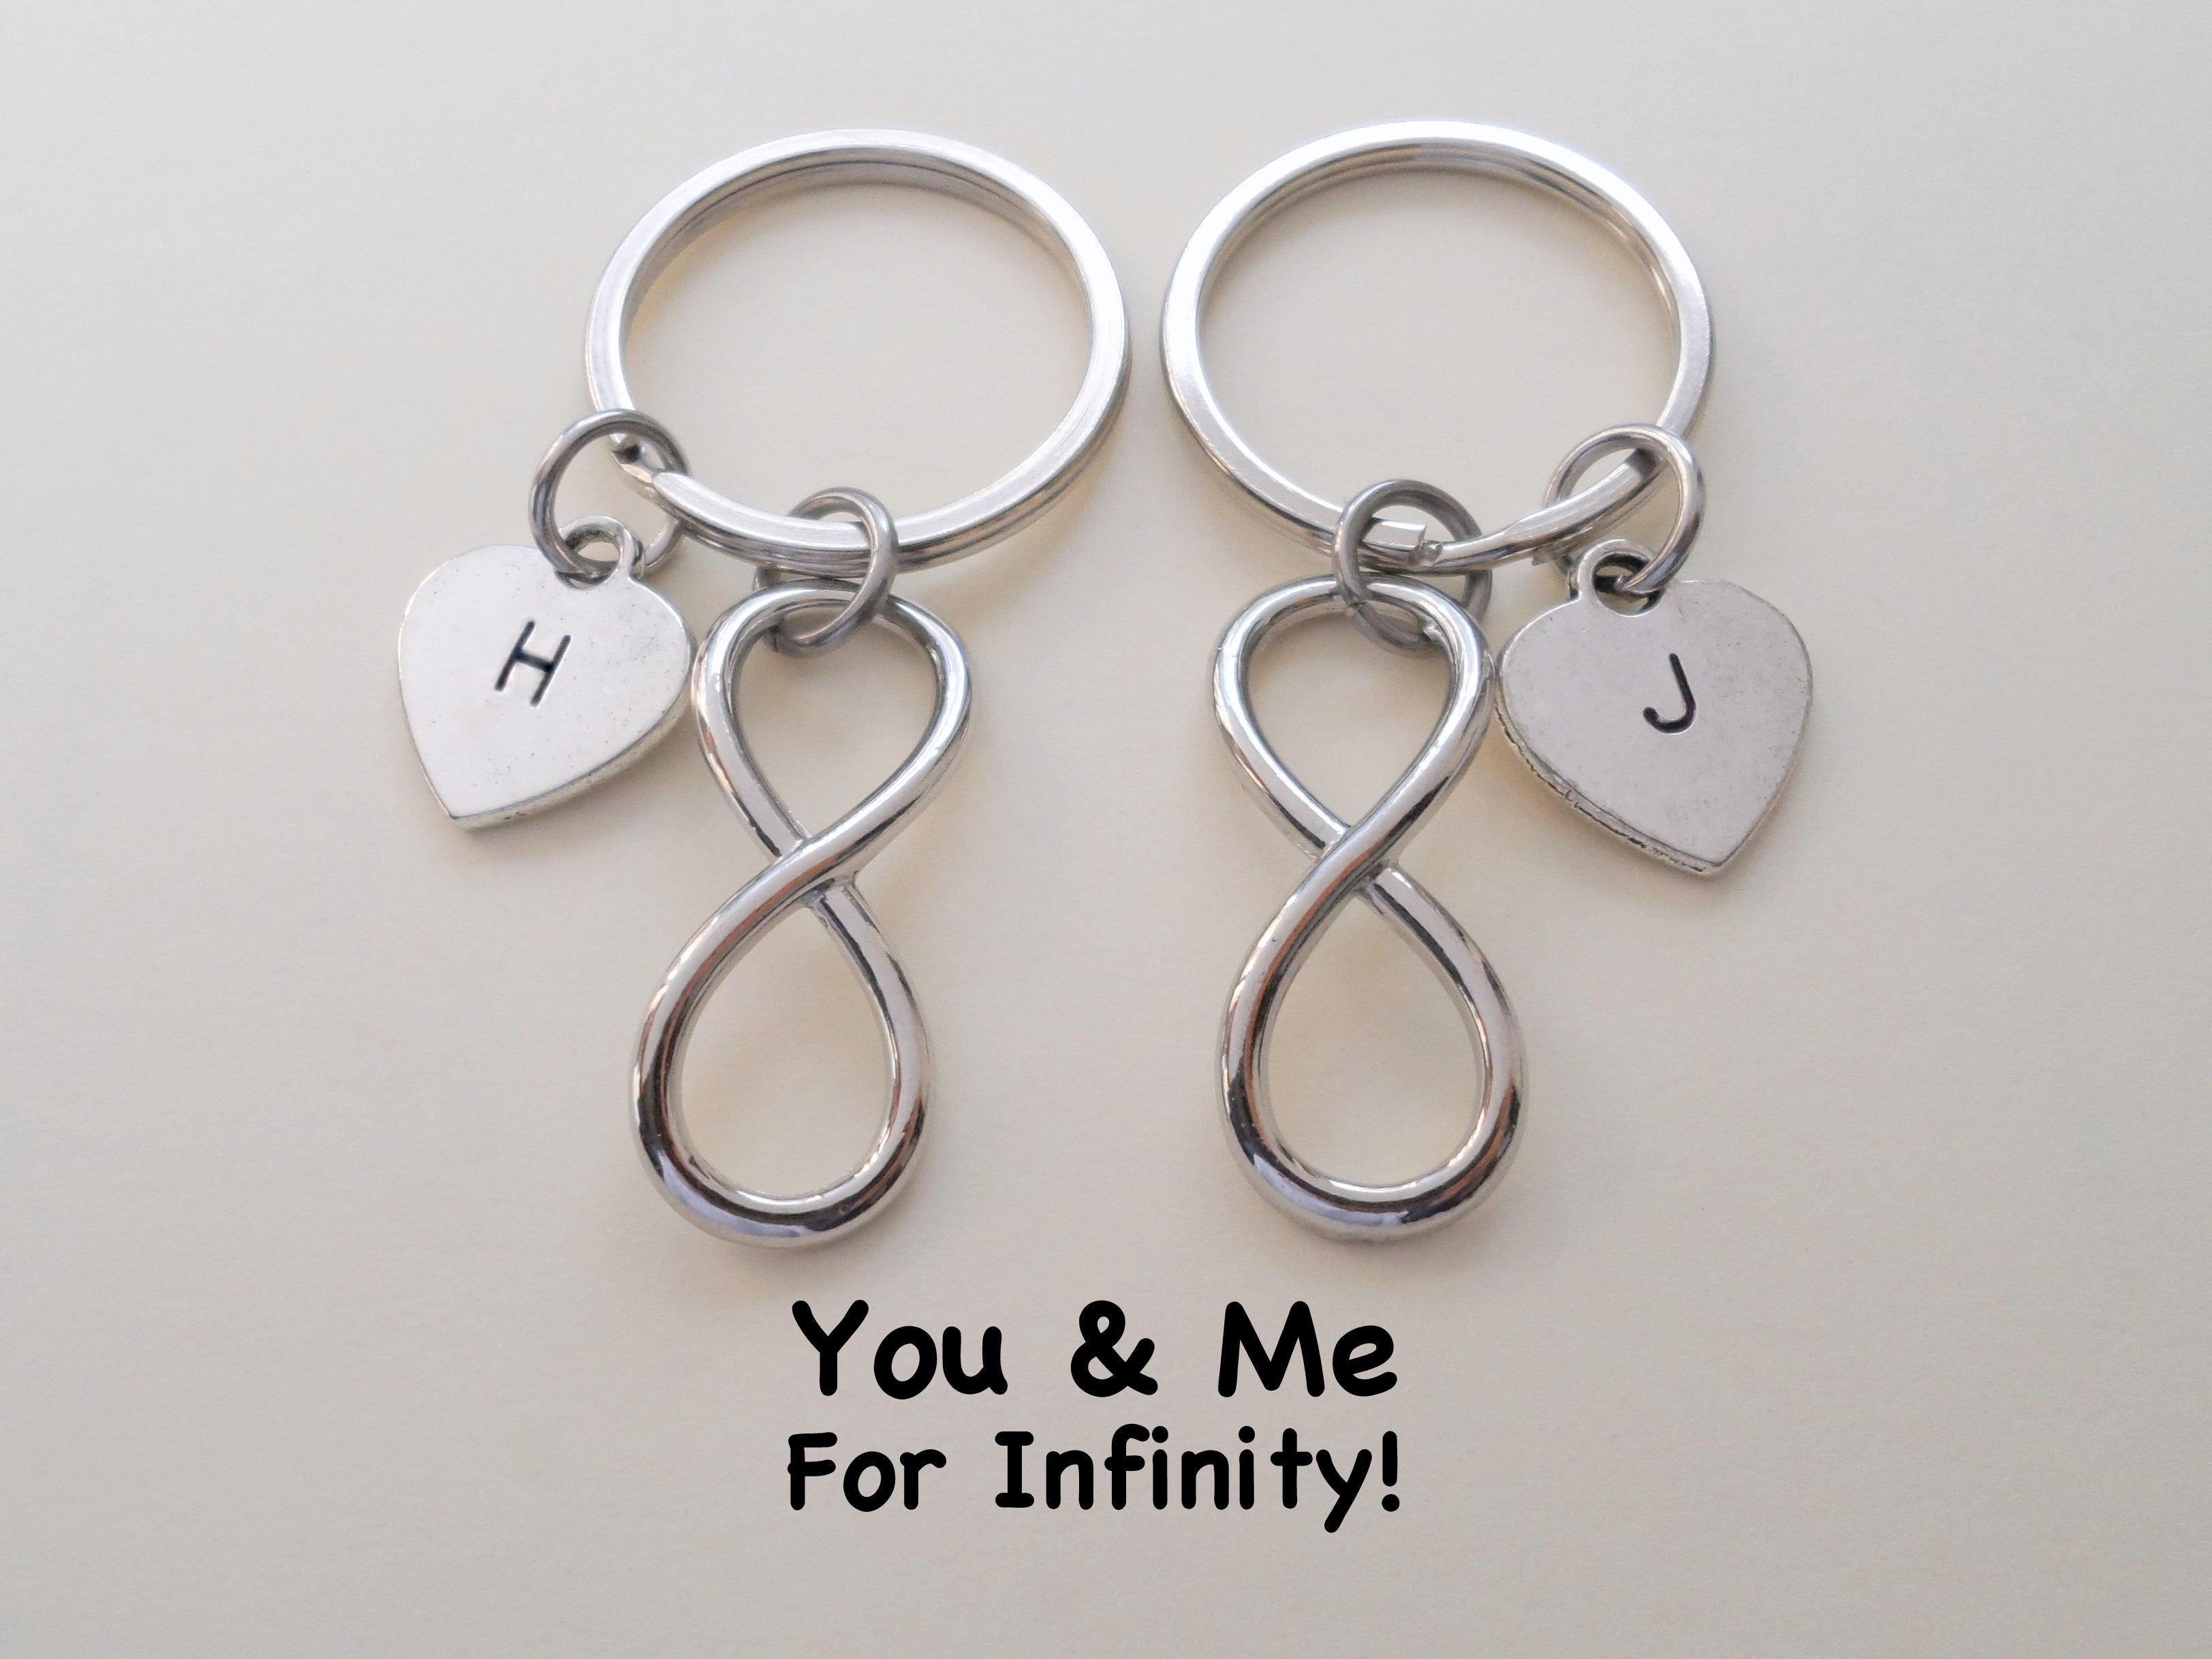 Double keychain set infinity symbol keychain you me for infinity double keychain set infinity symbol keychain you and me for infinity couples keychain set biocorpaavc Gallery